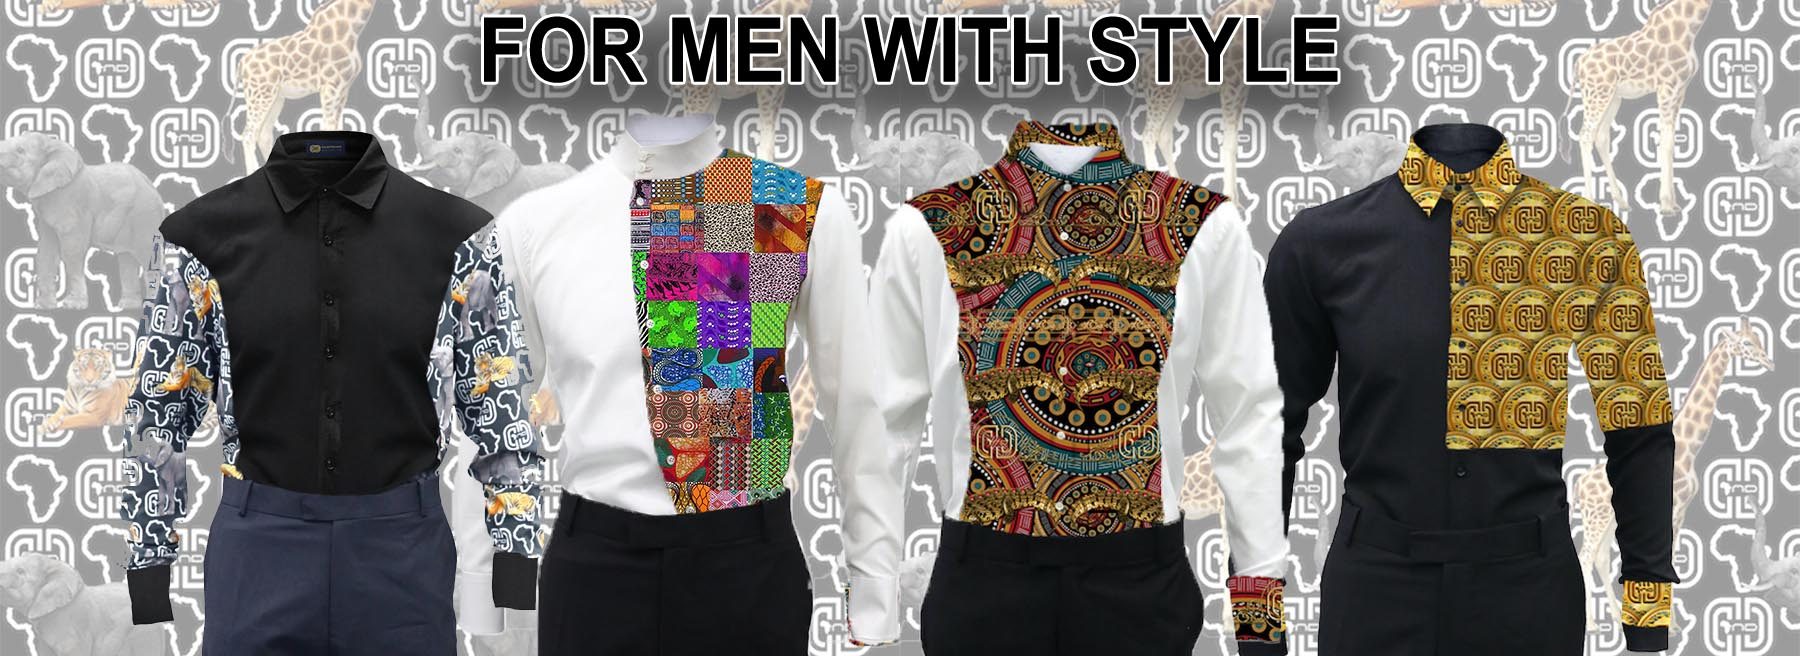 Shirts for Casual and Formal Wear | Men's African Shirts | NH